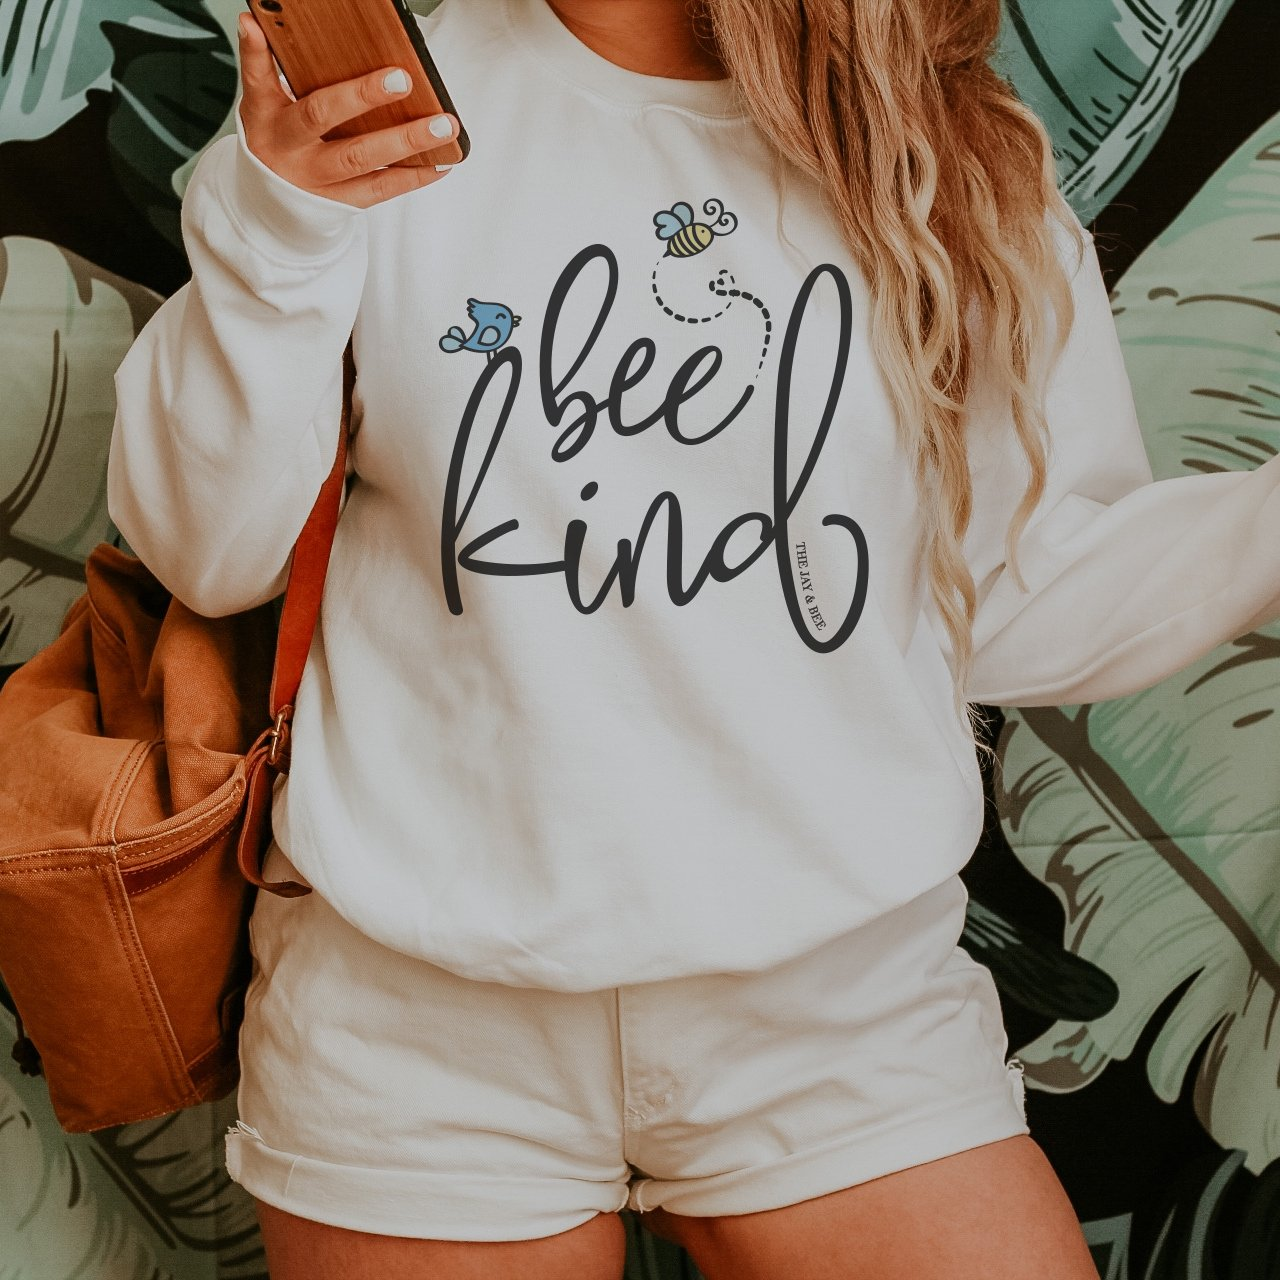 Bee Kind Sweatshirt - Be Kind Sweatshirt - Kindness Sweater - Positivity Sweatshirt - The Jay and Bee Sweatshirt - Gift for Her